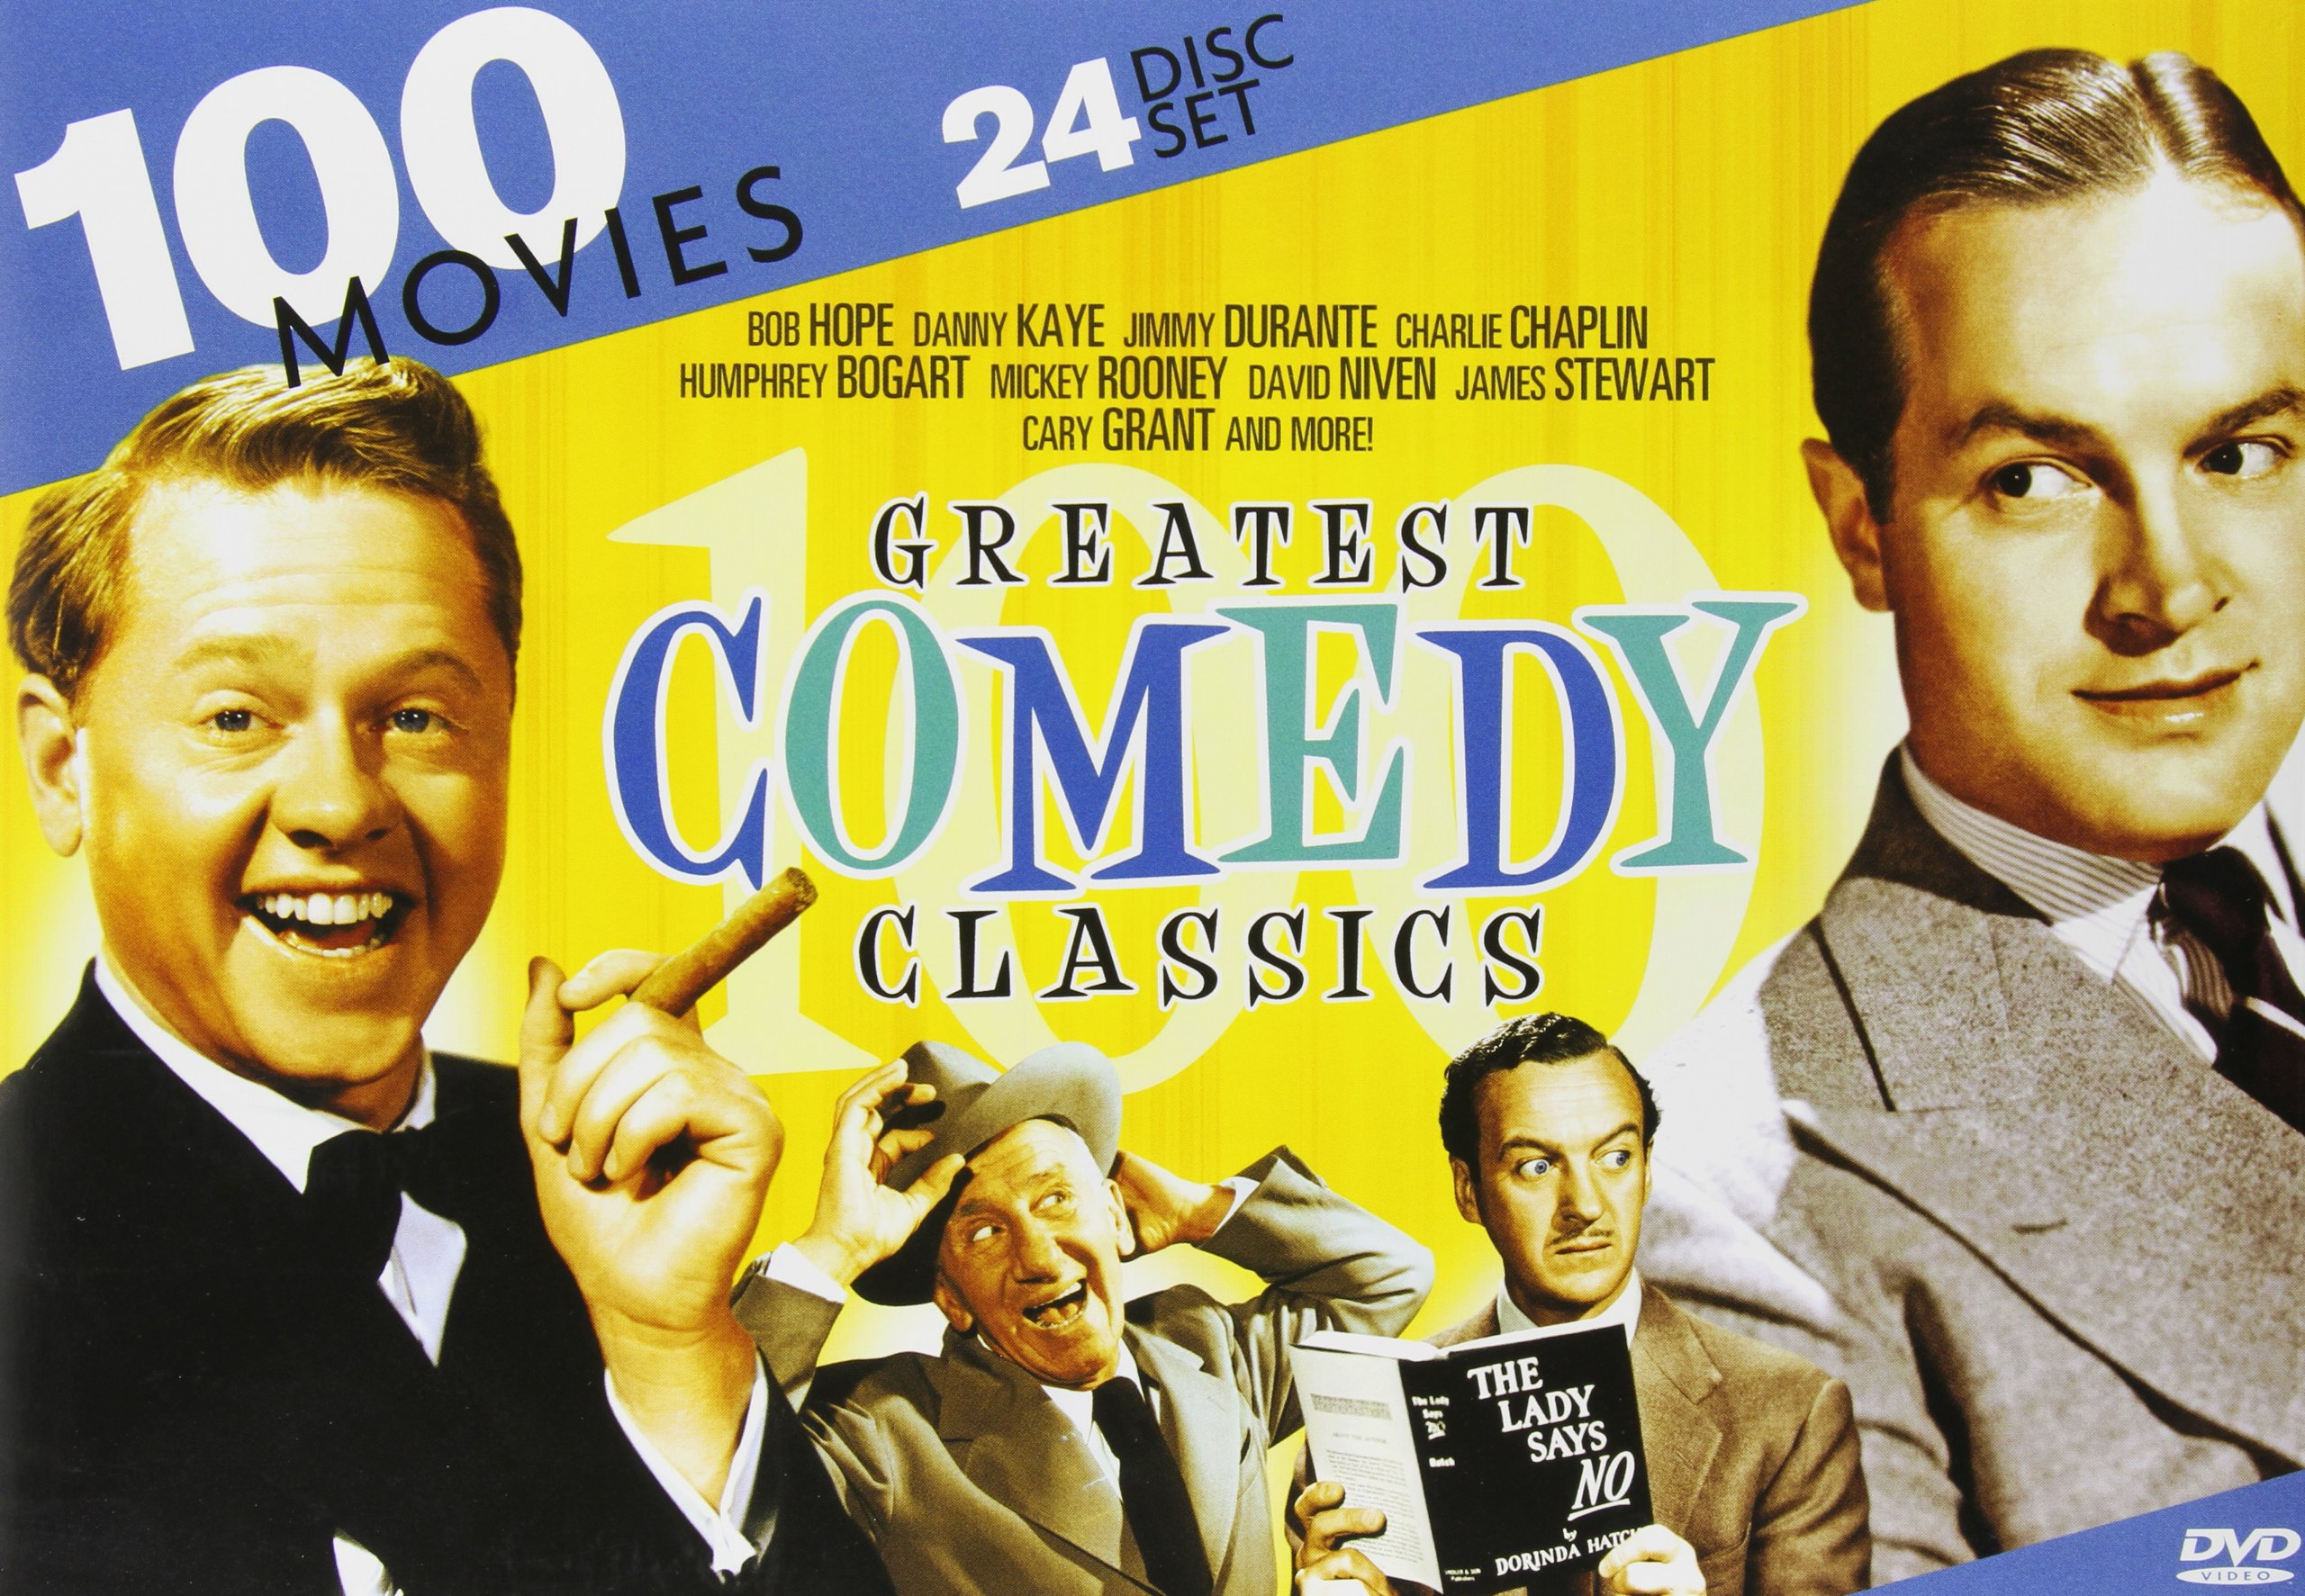 100 Greatest Comedy Classics - Comedy Kings + Hollywood Comedy by Mill Creek Entertainment